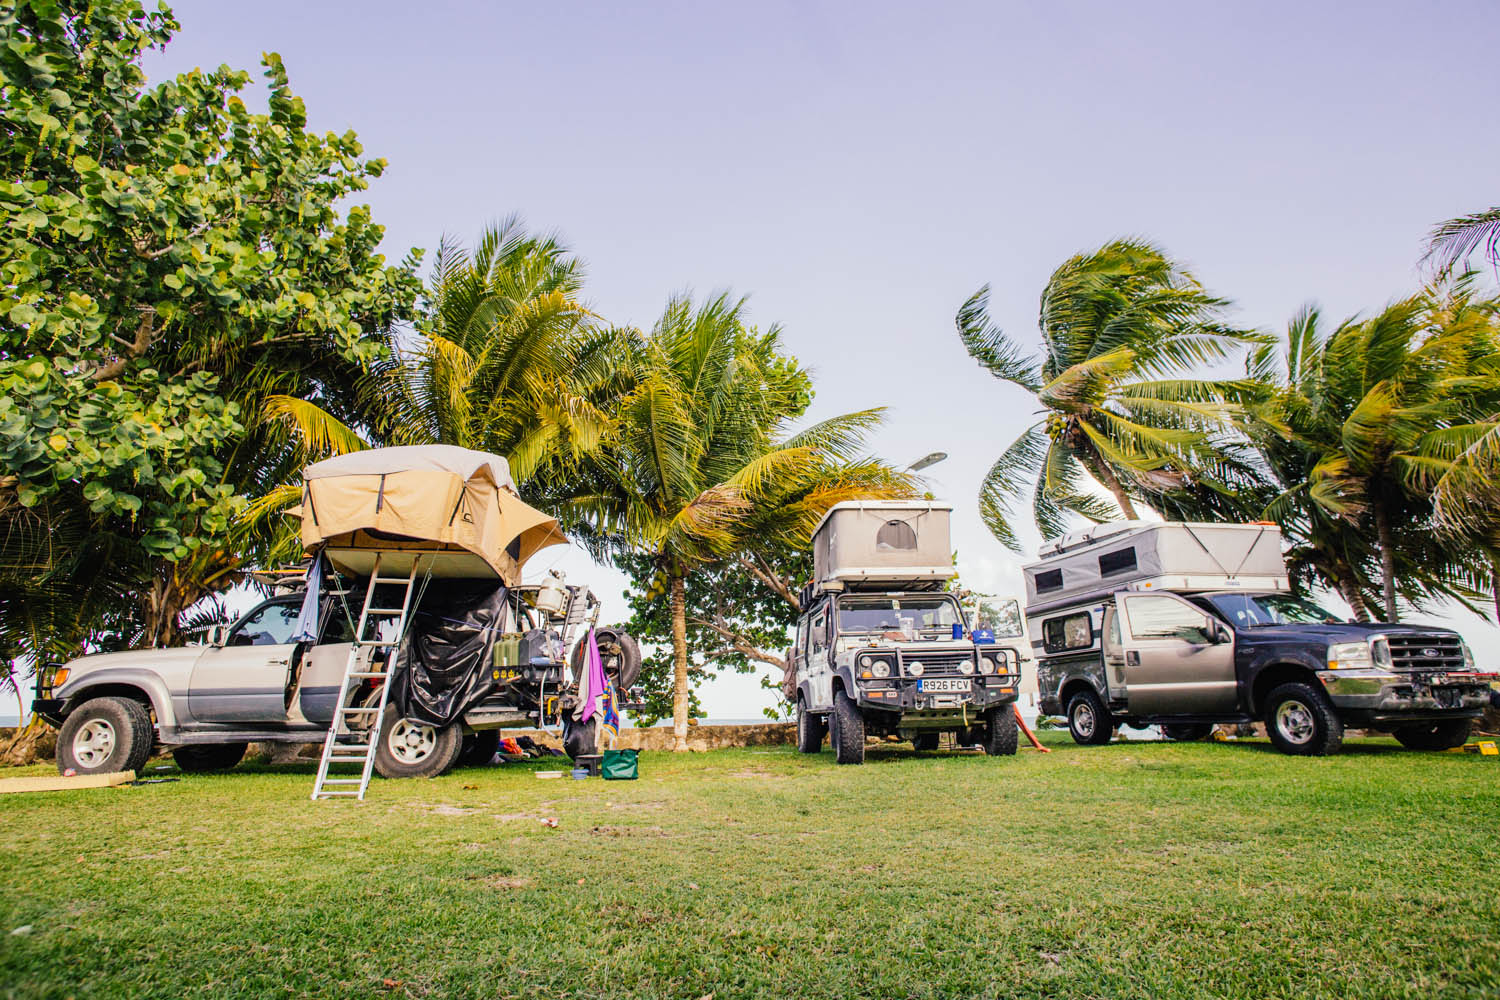 Camping in Chetumal, Mexico before our border crossing.